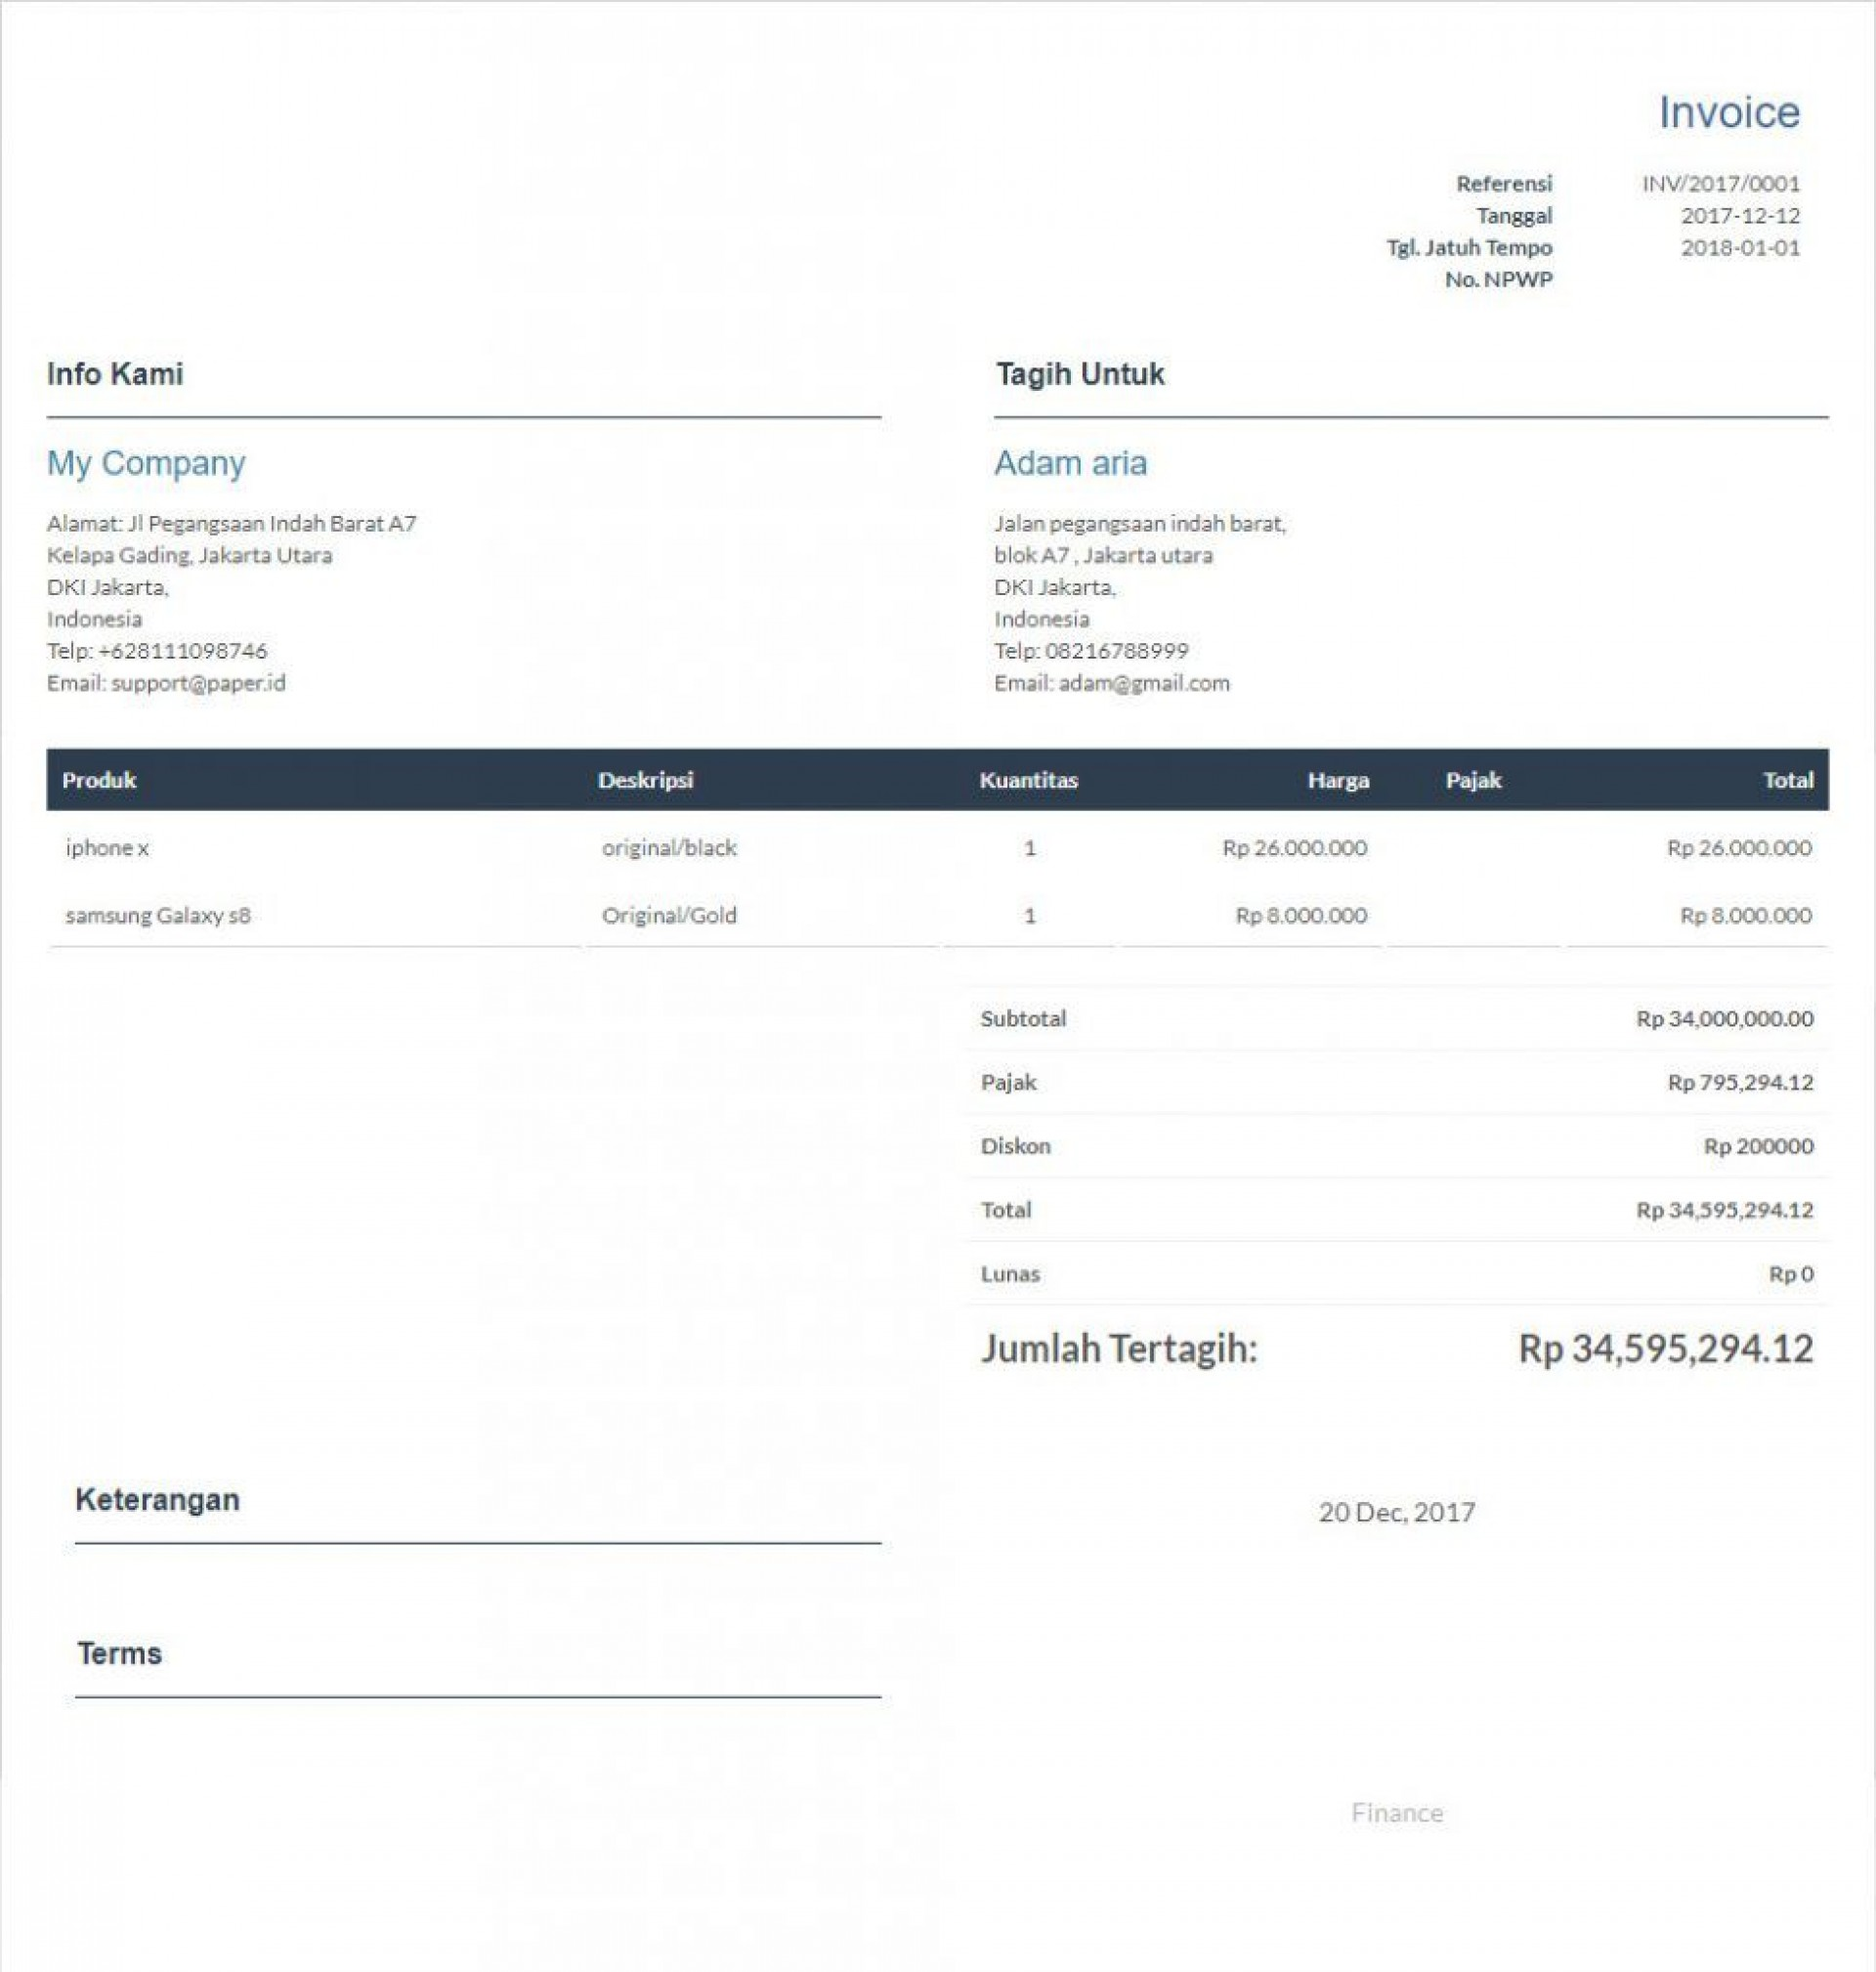 008 Fascinating Free Downloadable Invoice Template Idea  Templates Excel Printable Word Sample1920